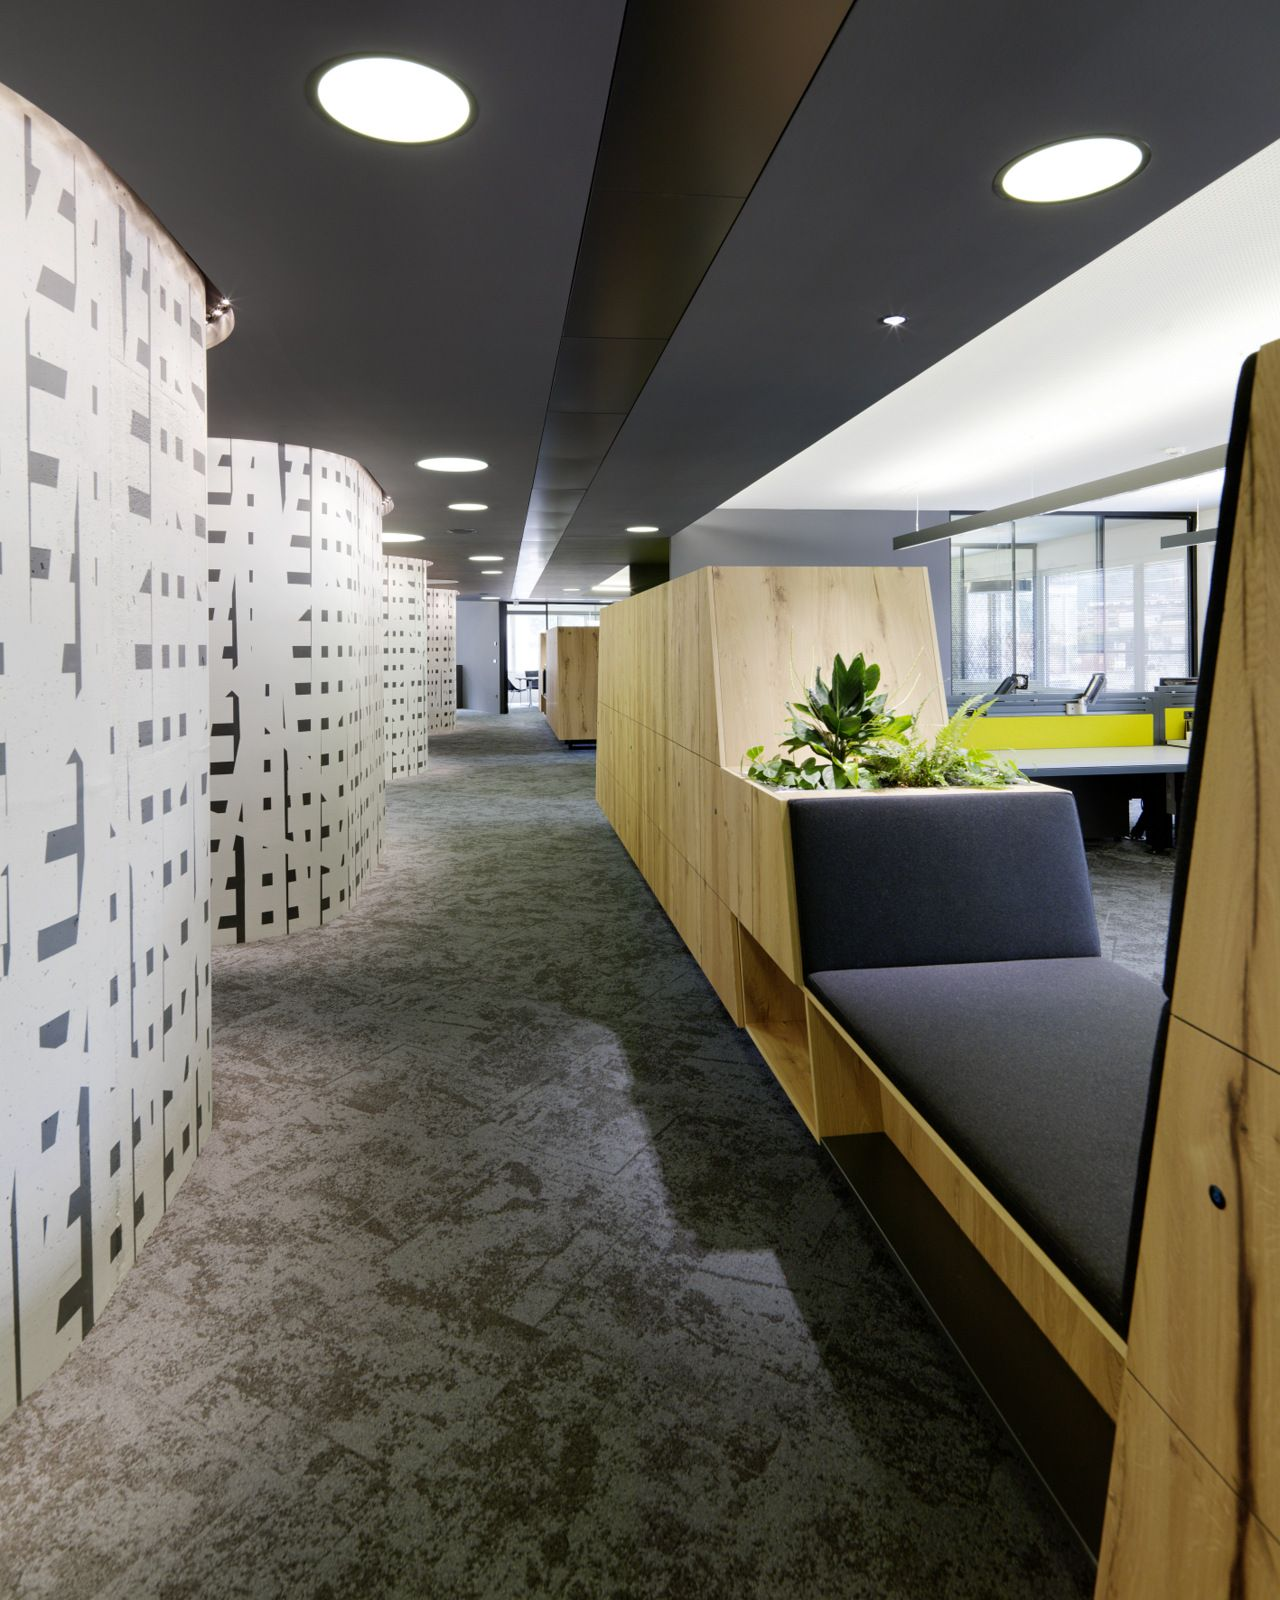 Volksbank Bolzano Offices Office Snapshots Commercial And Office Architecture Office Interior Design Architecture Office